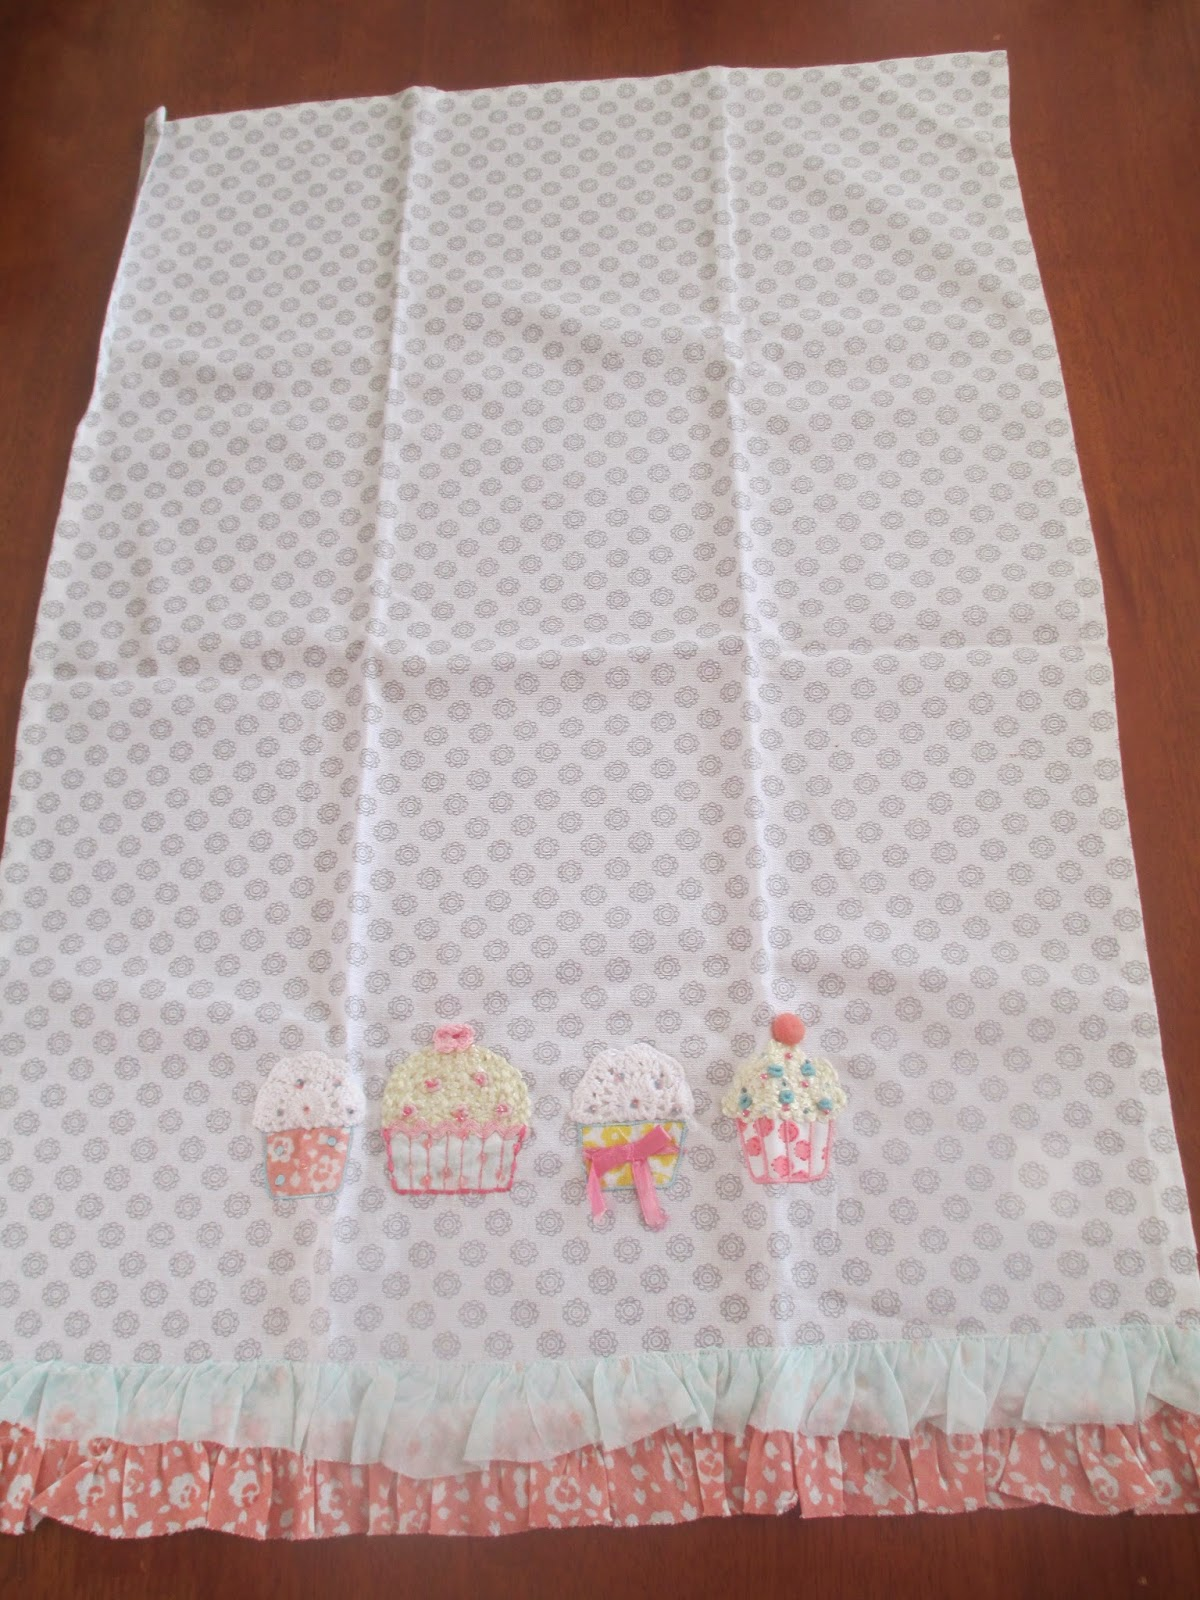 Tea Towels From Us Trip Laws Of The Kitchen